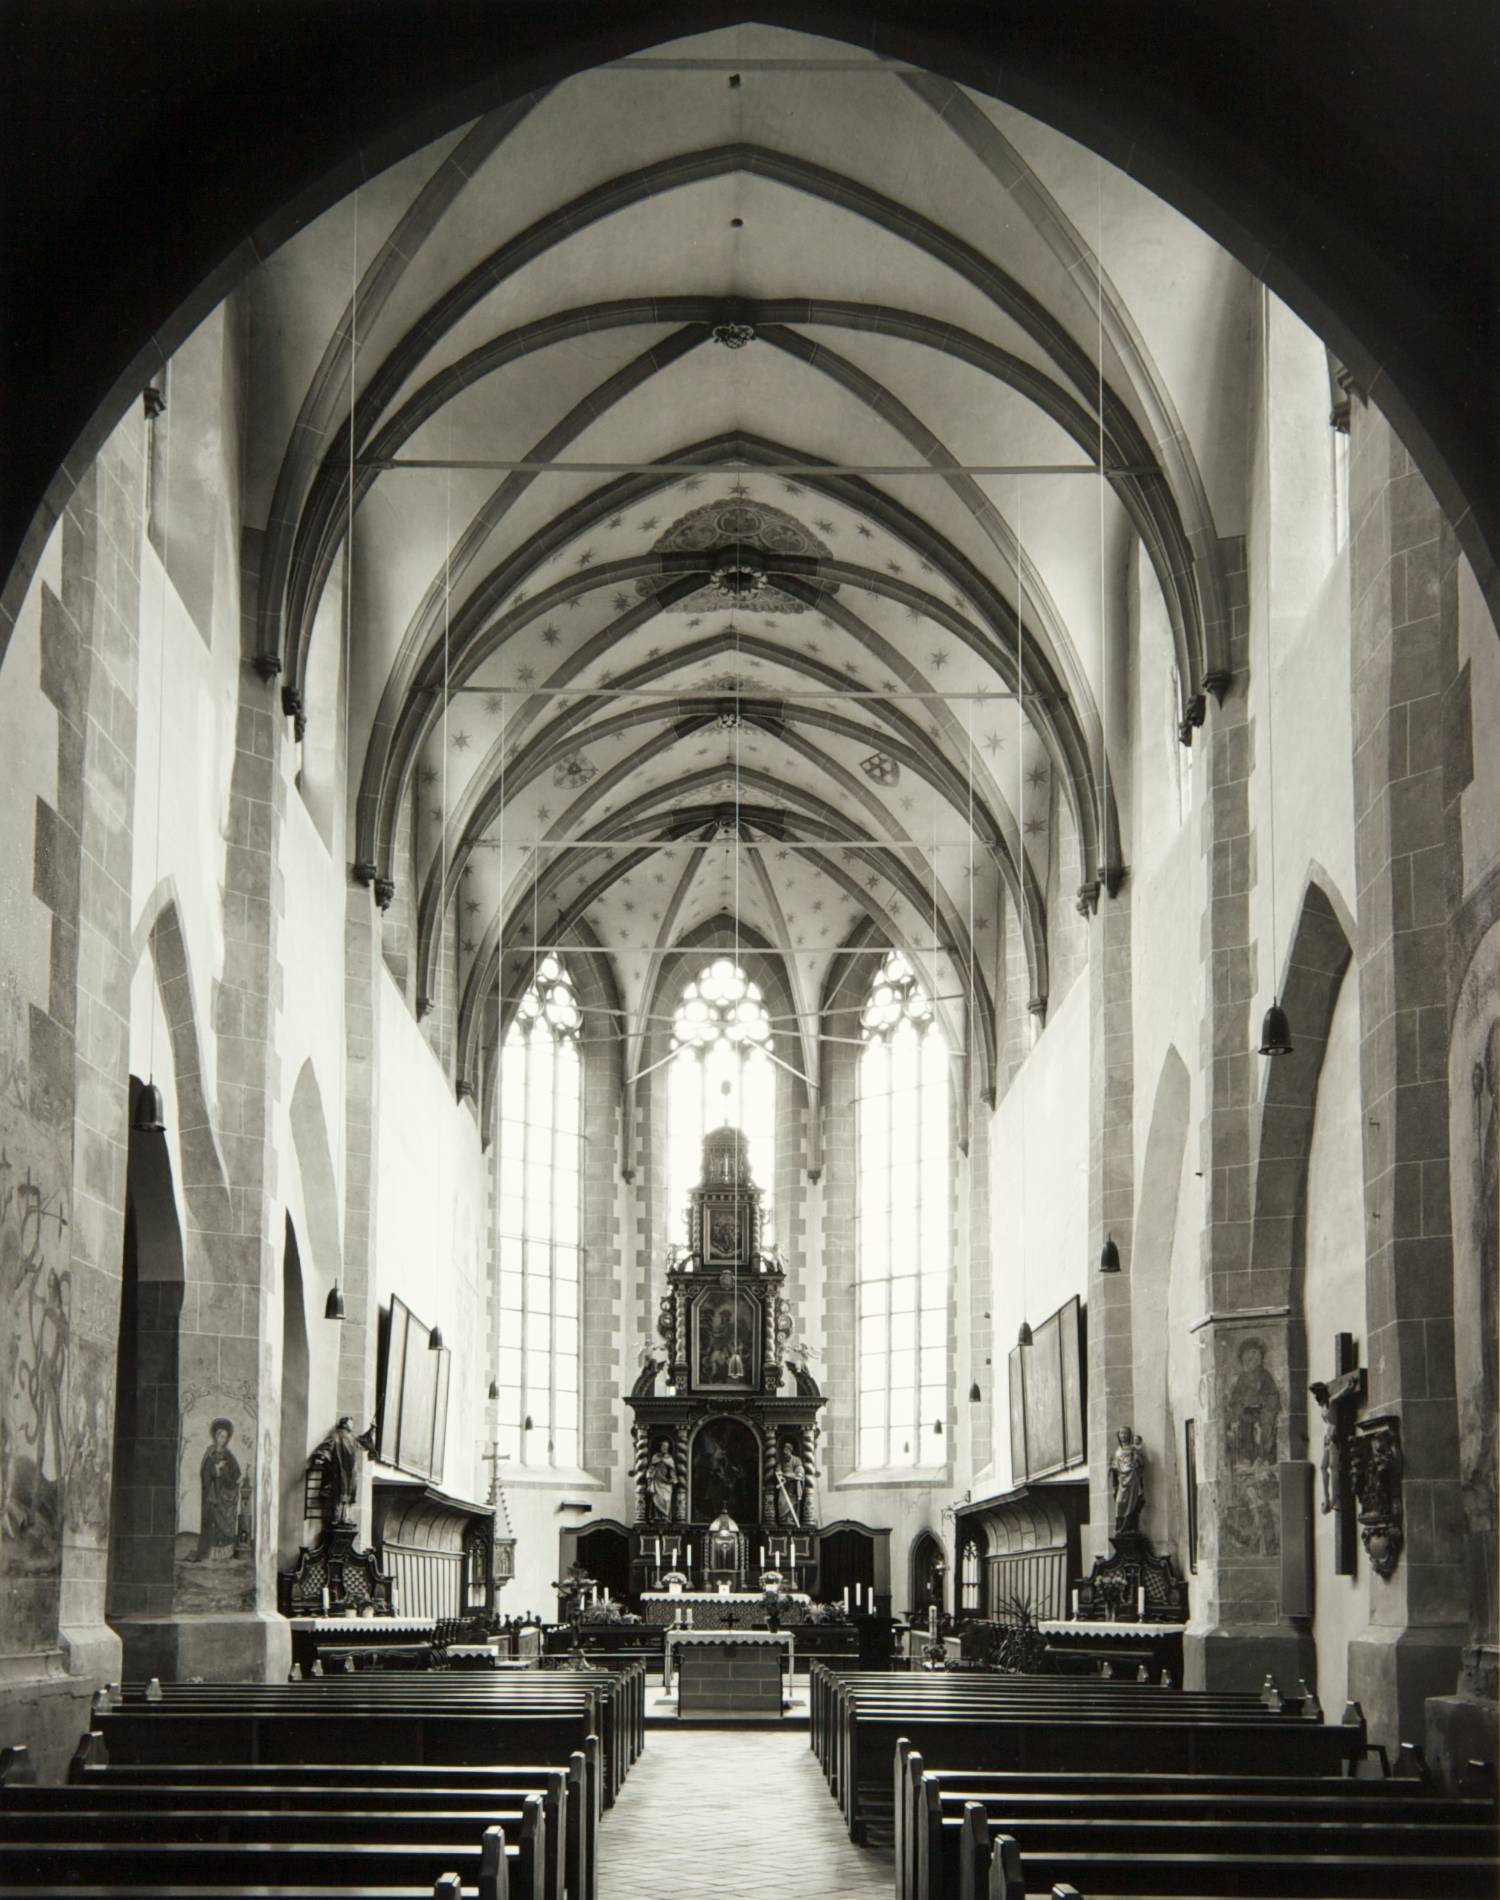 St. Martin's Church (Oberwesel, Germany)